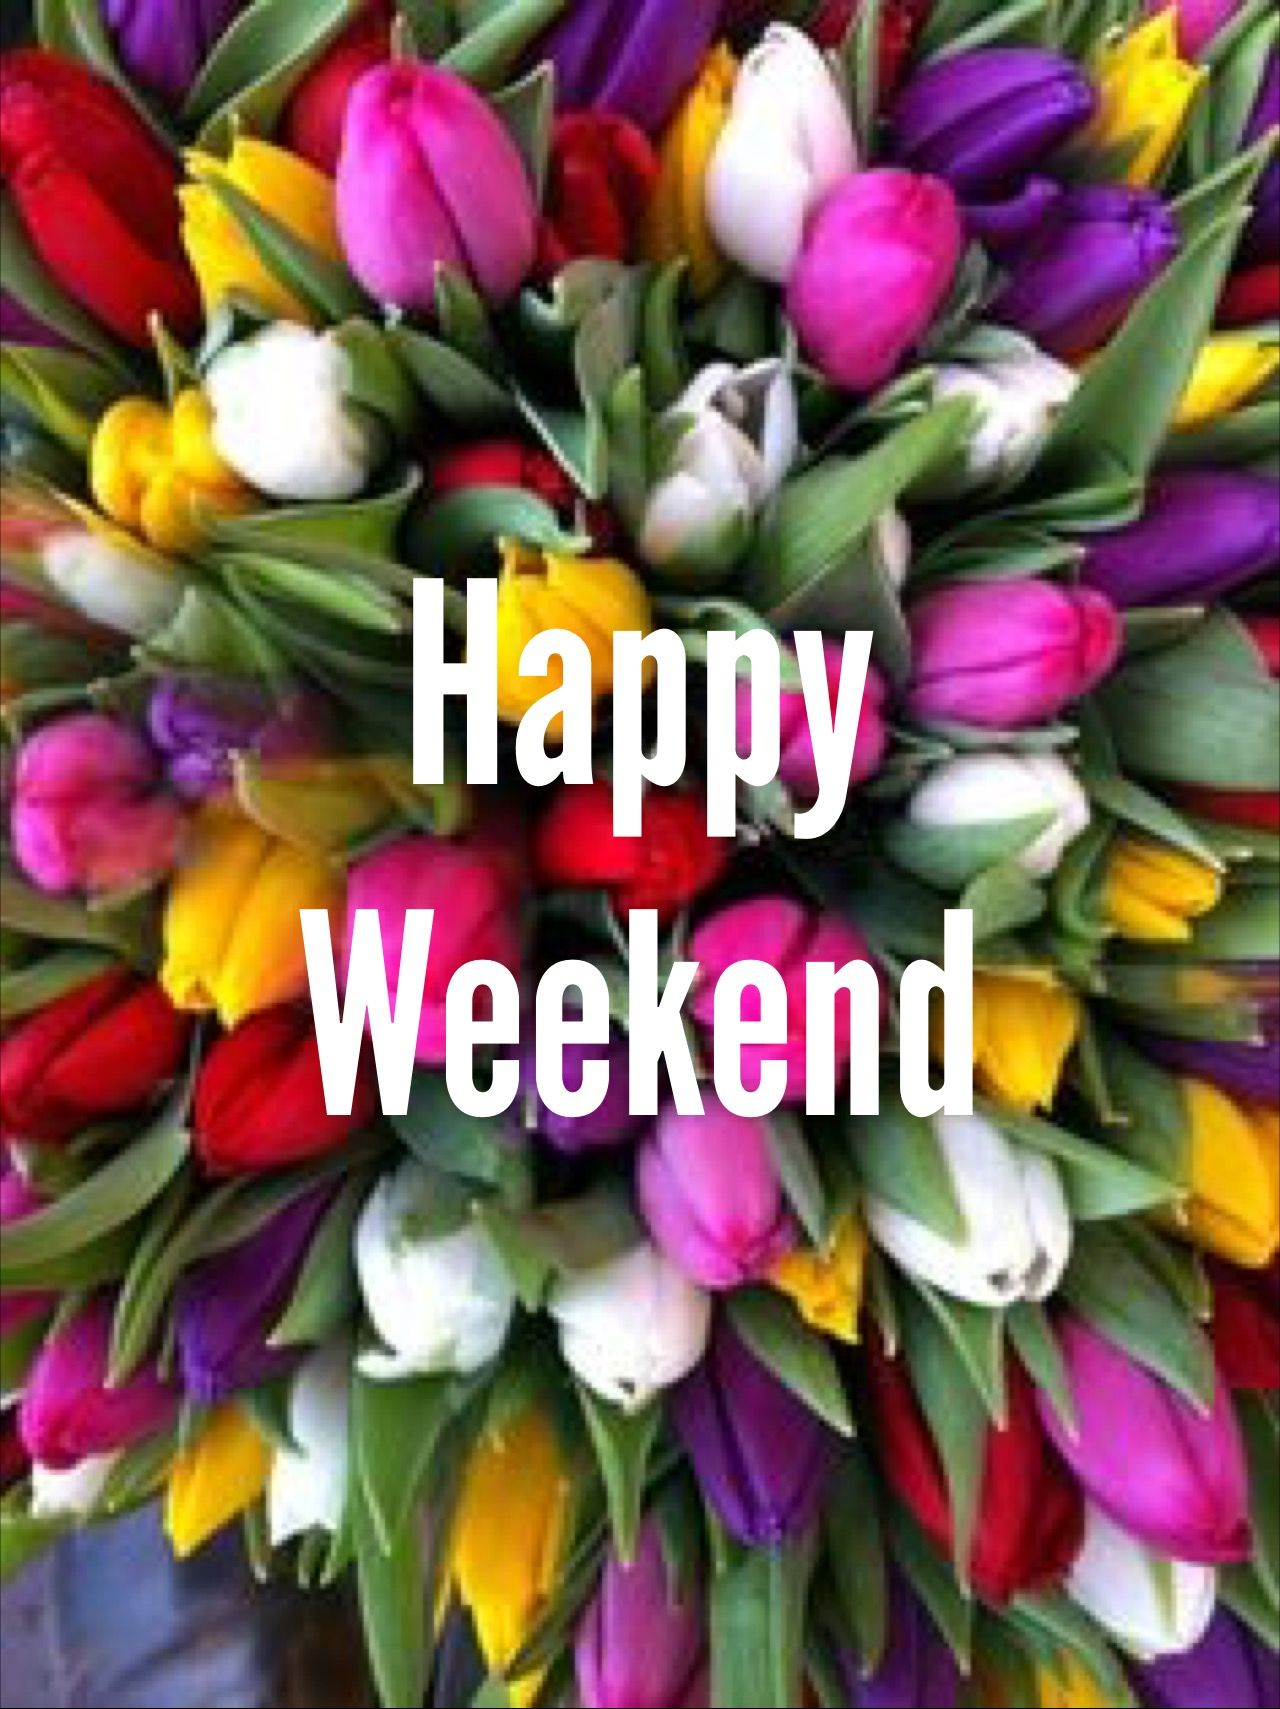 TGIF! Wishing you all a great weekend. | Tulips, Spring flowers, Flowers